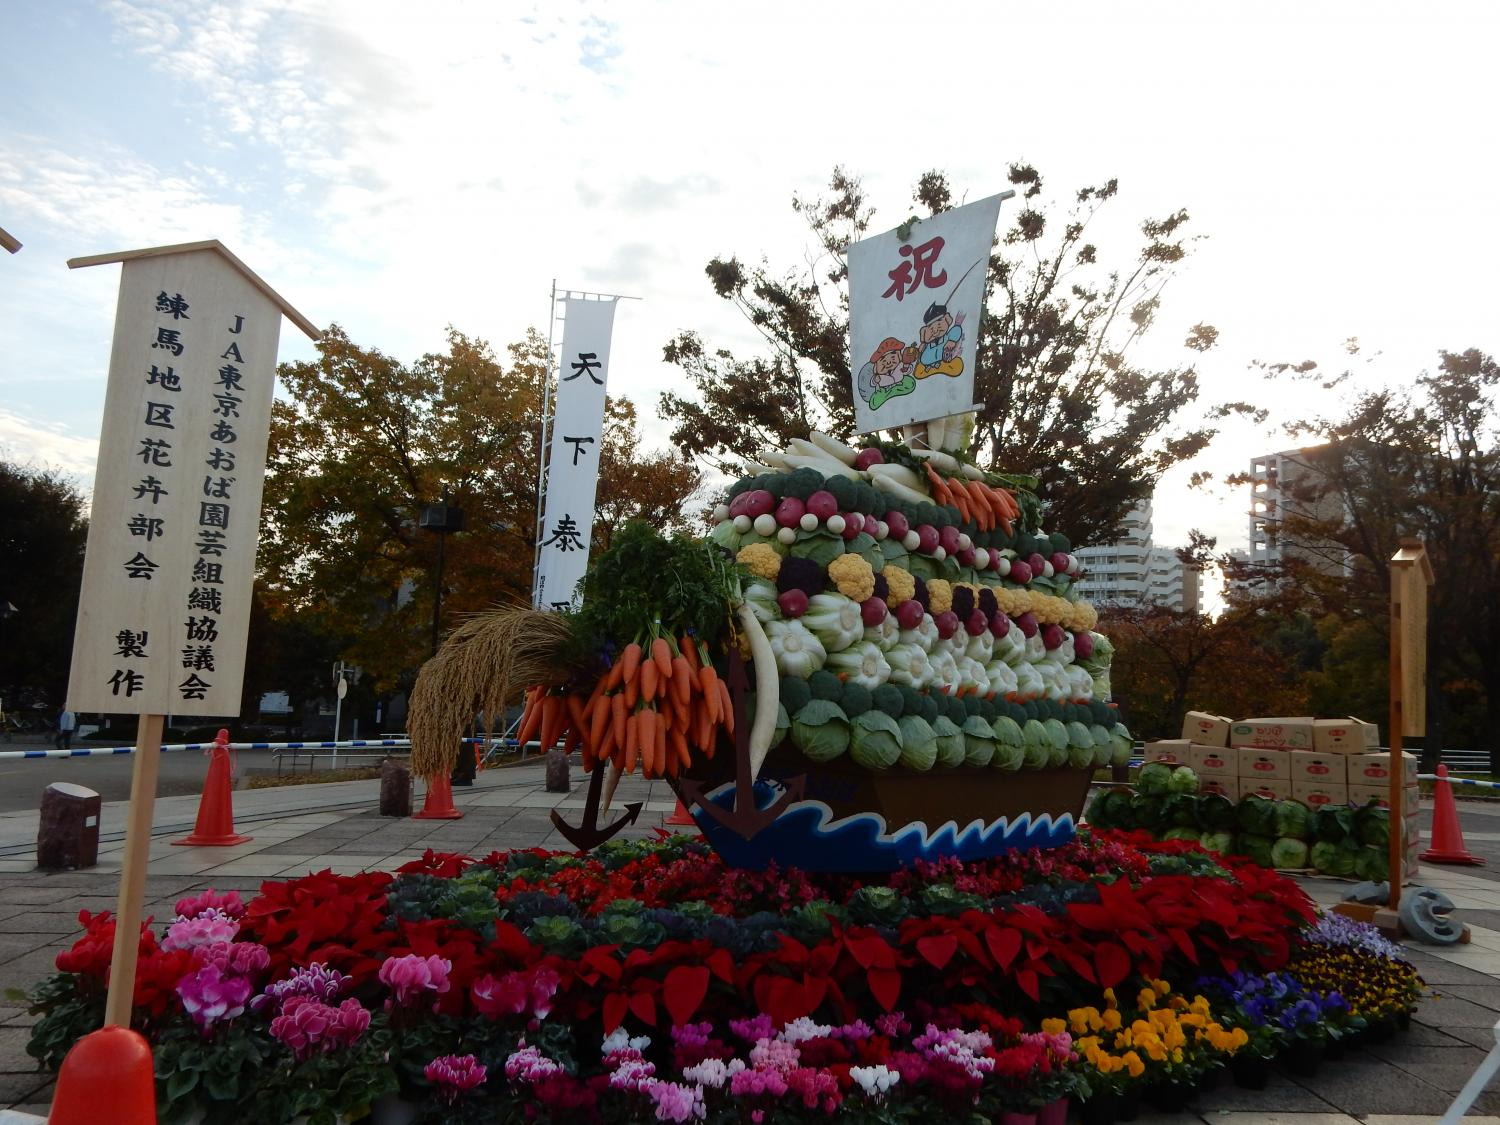 [cancellation decision] The 23rd JA Tokyo green leaves agriculture festival